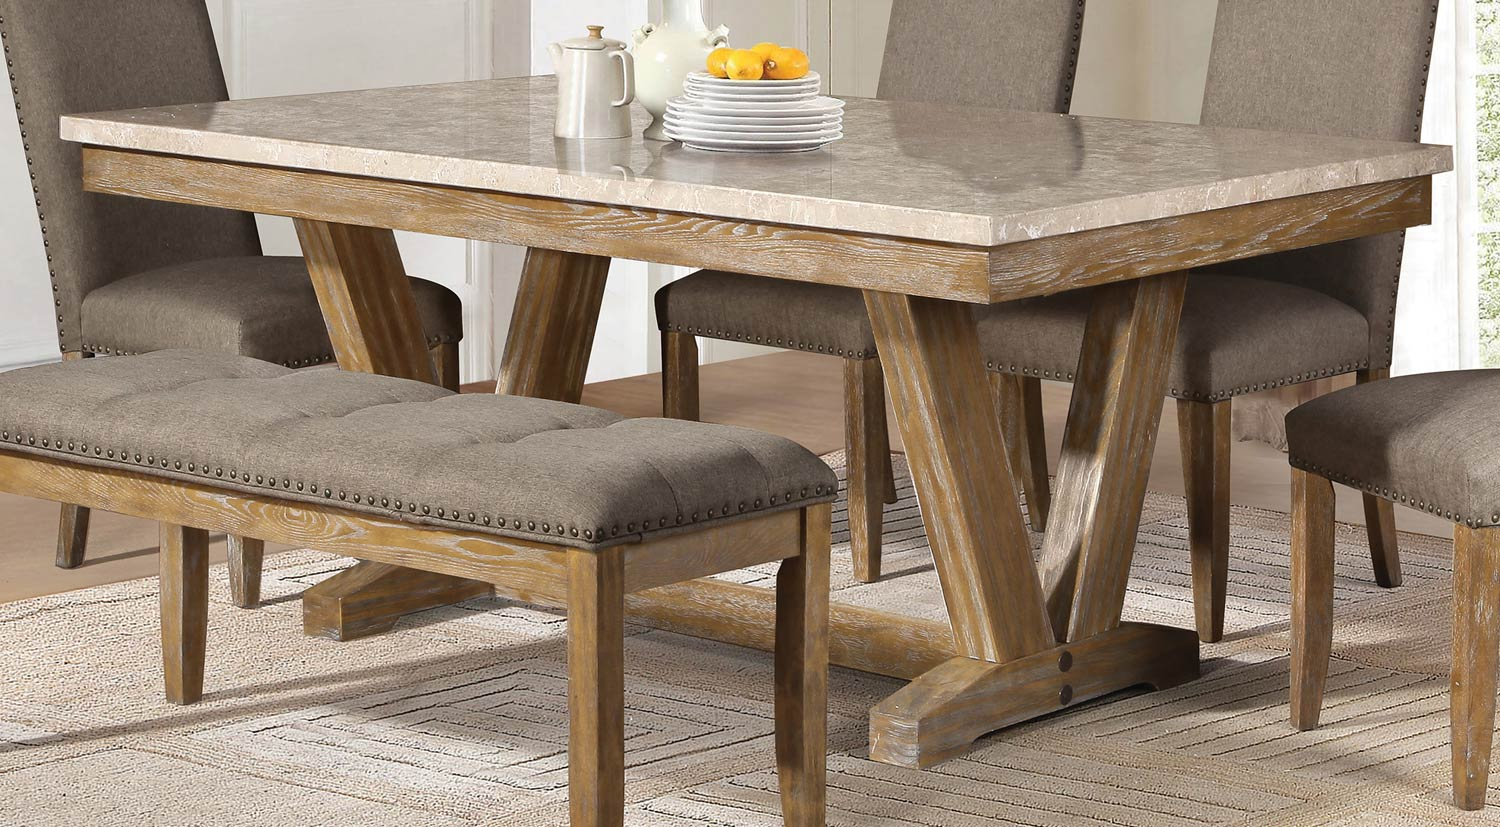 Homelegance Jemez Dining Table - Faux Marble Top - Weathered Wood